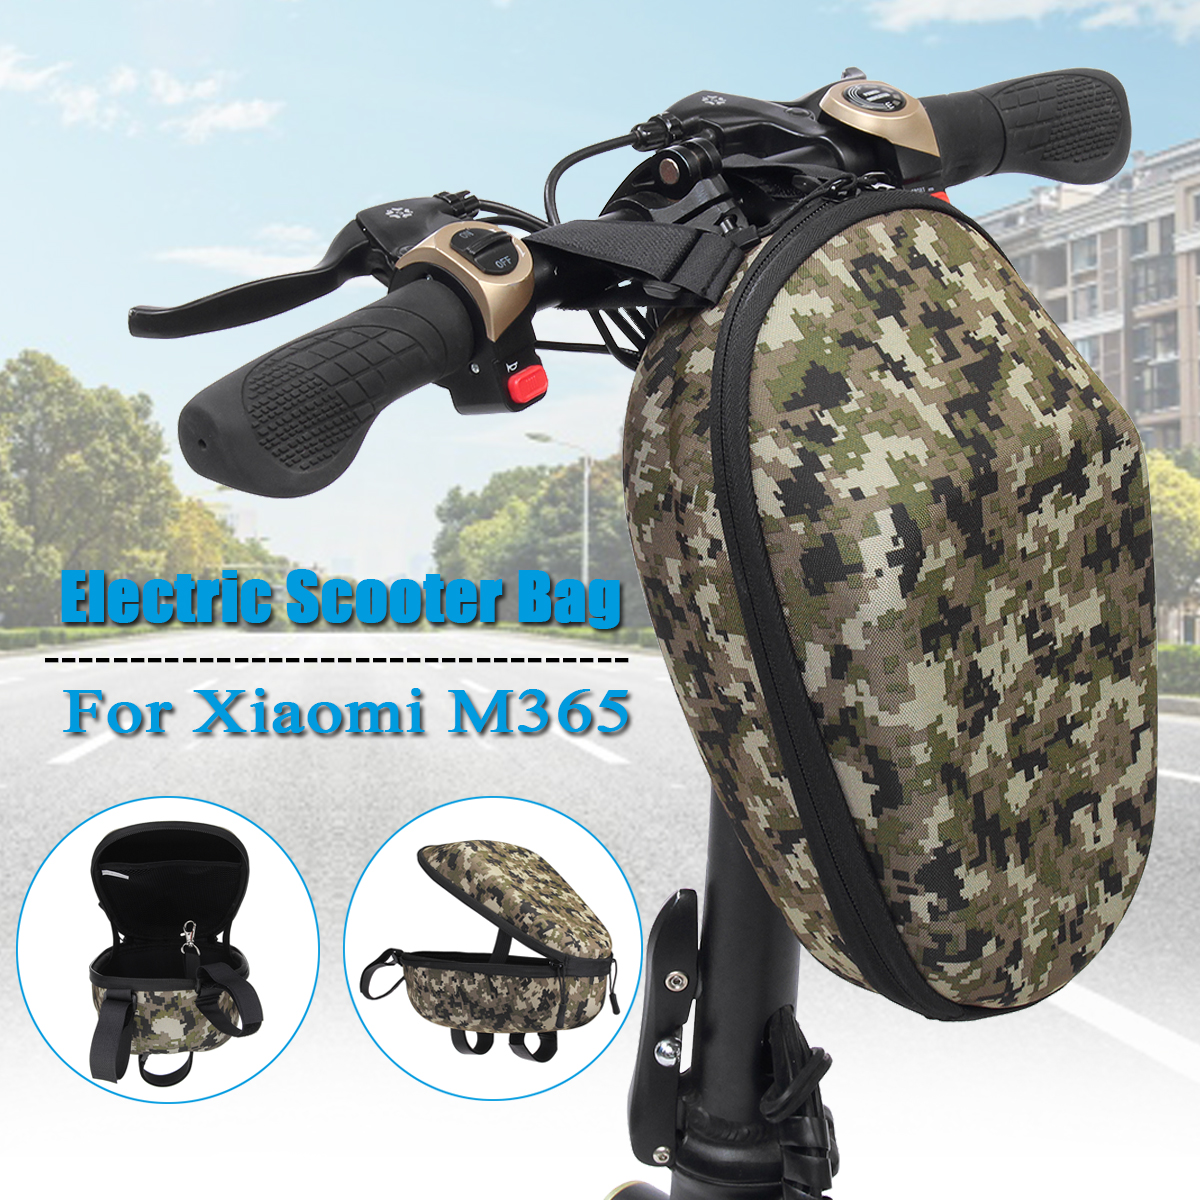 Universal Scooter Head Handle Bag Front Carry Bag for Xiaomi Mijia M365 Electric Scooter for Ninebot ES Skateboard Storage Bags